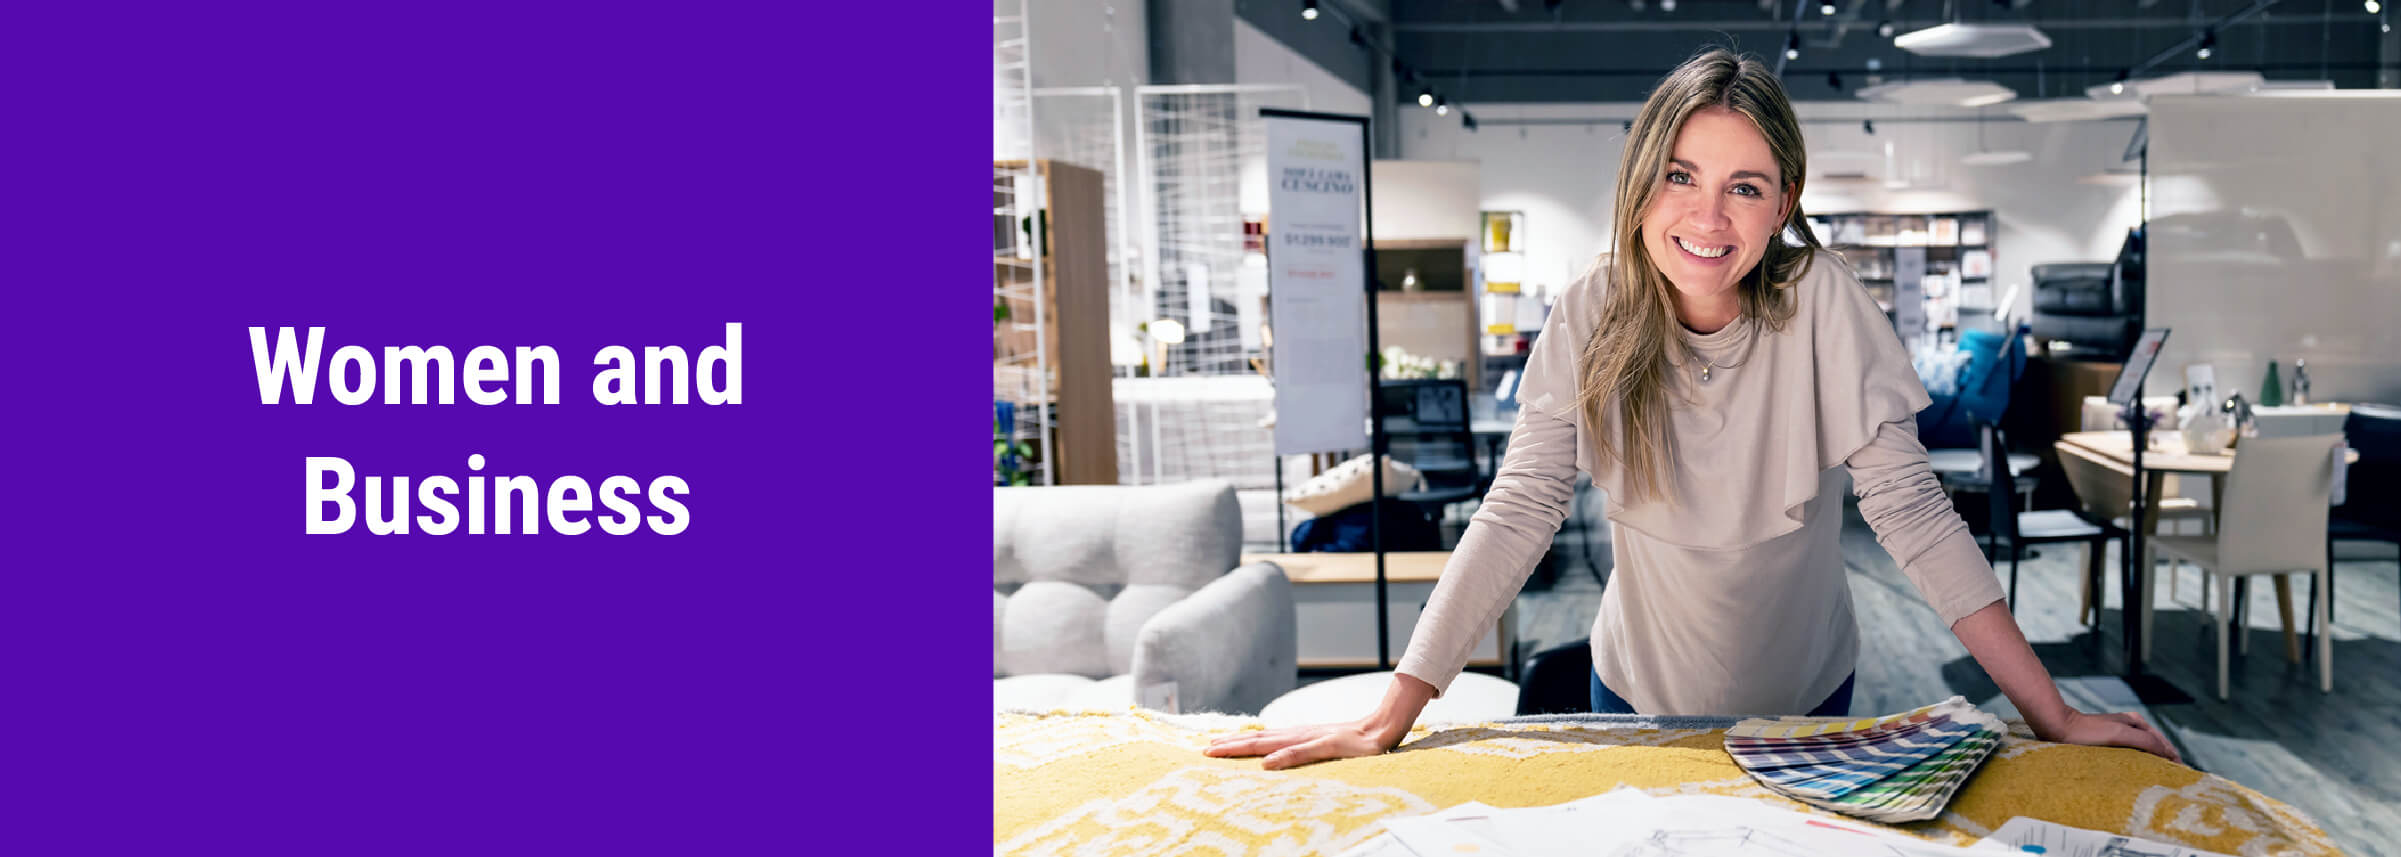 Women and business page banner